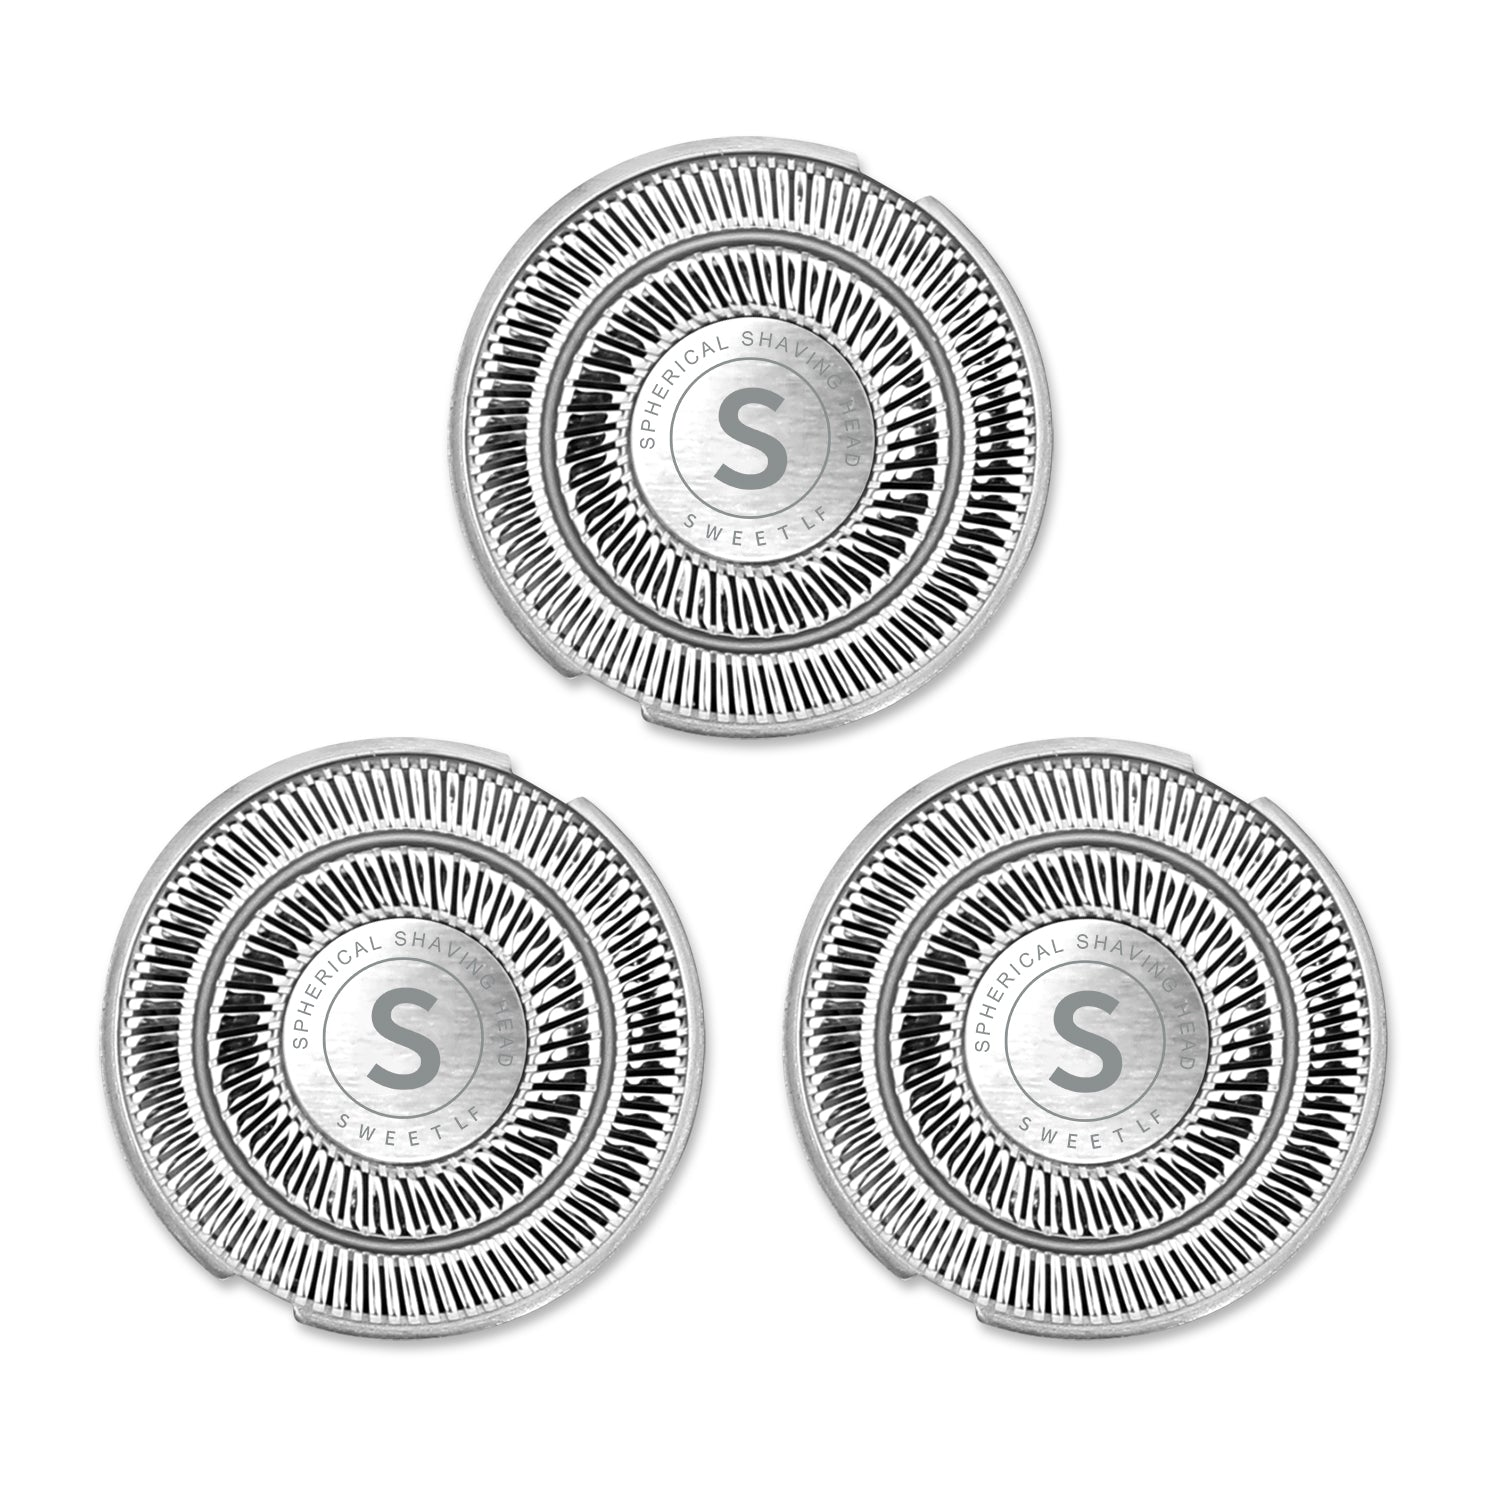 SweetLF SWS7105 shaver Blades